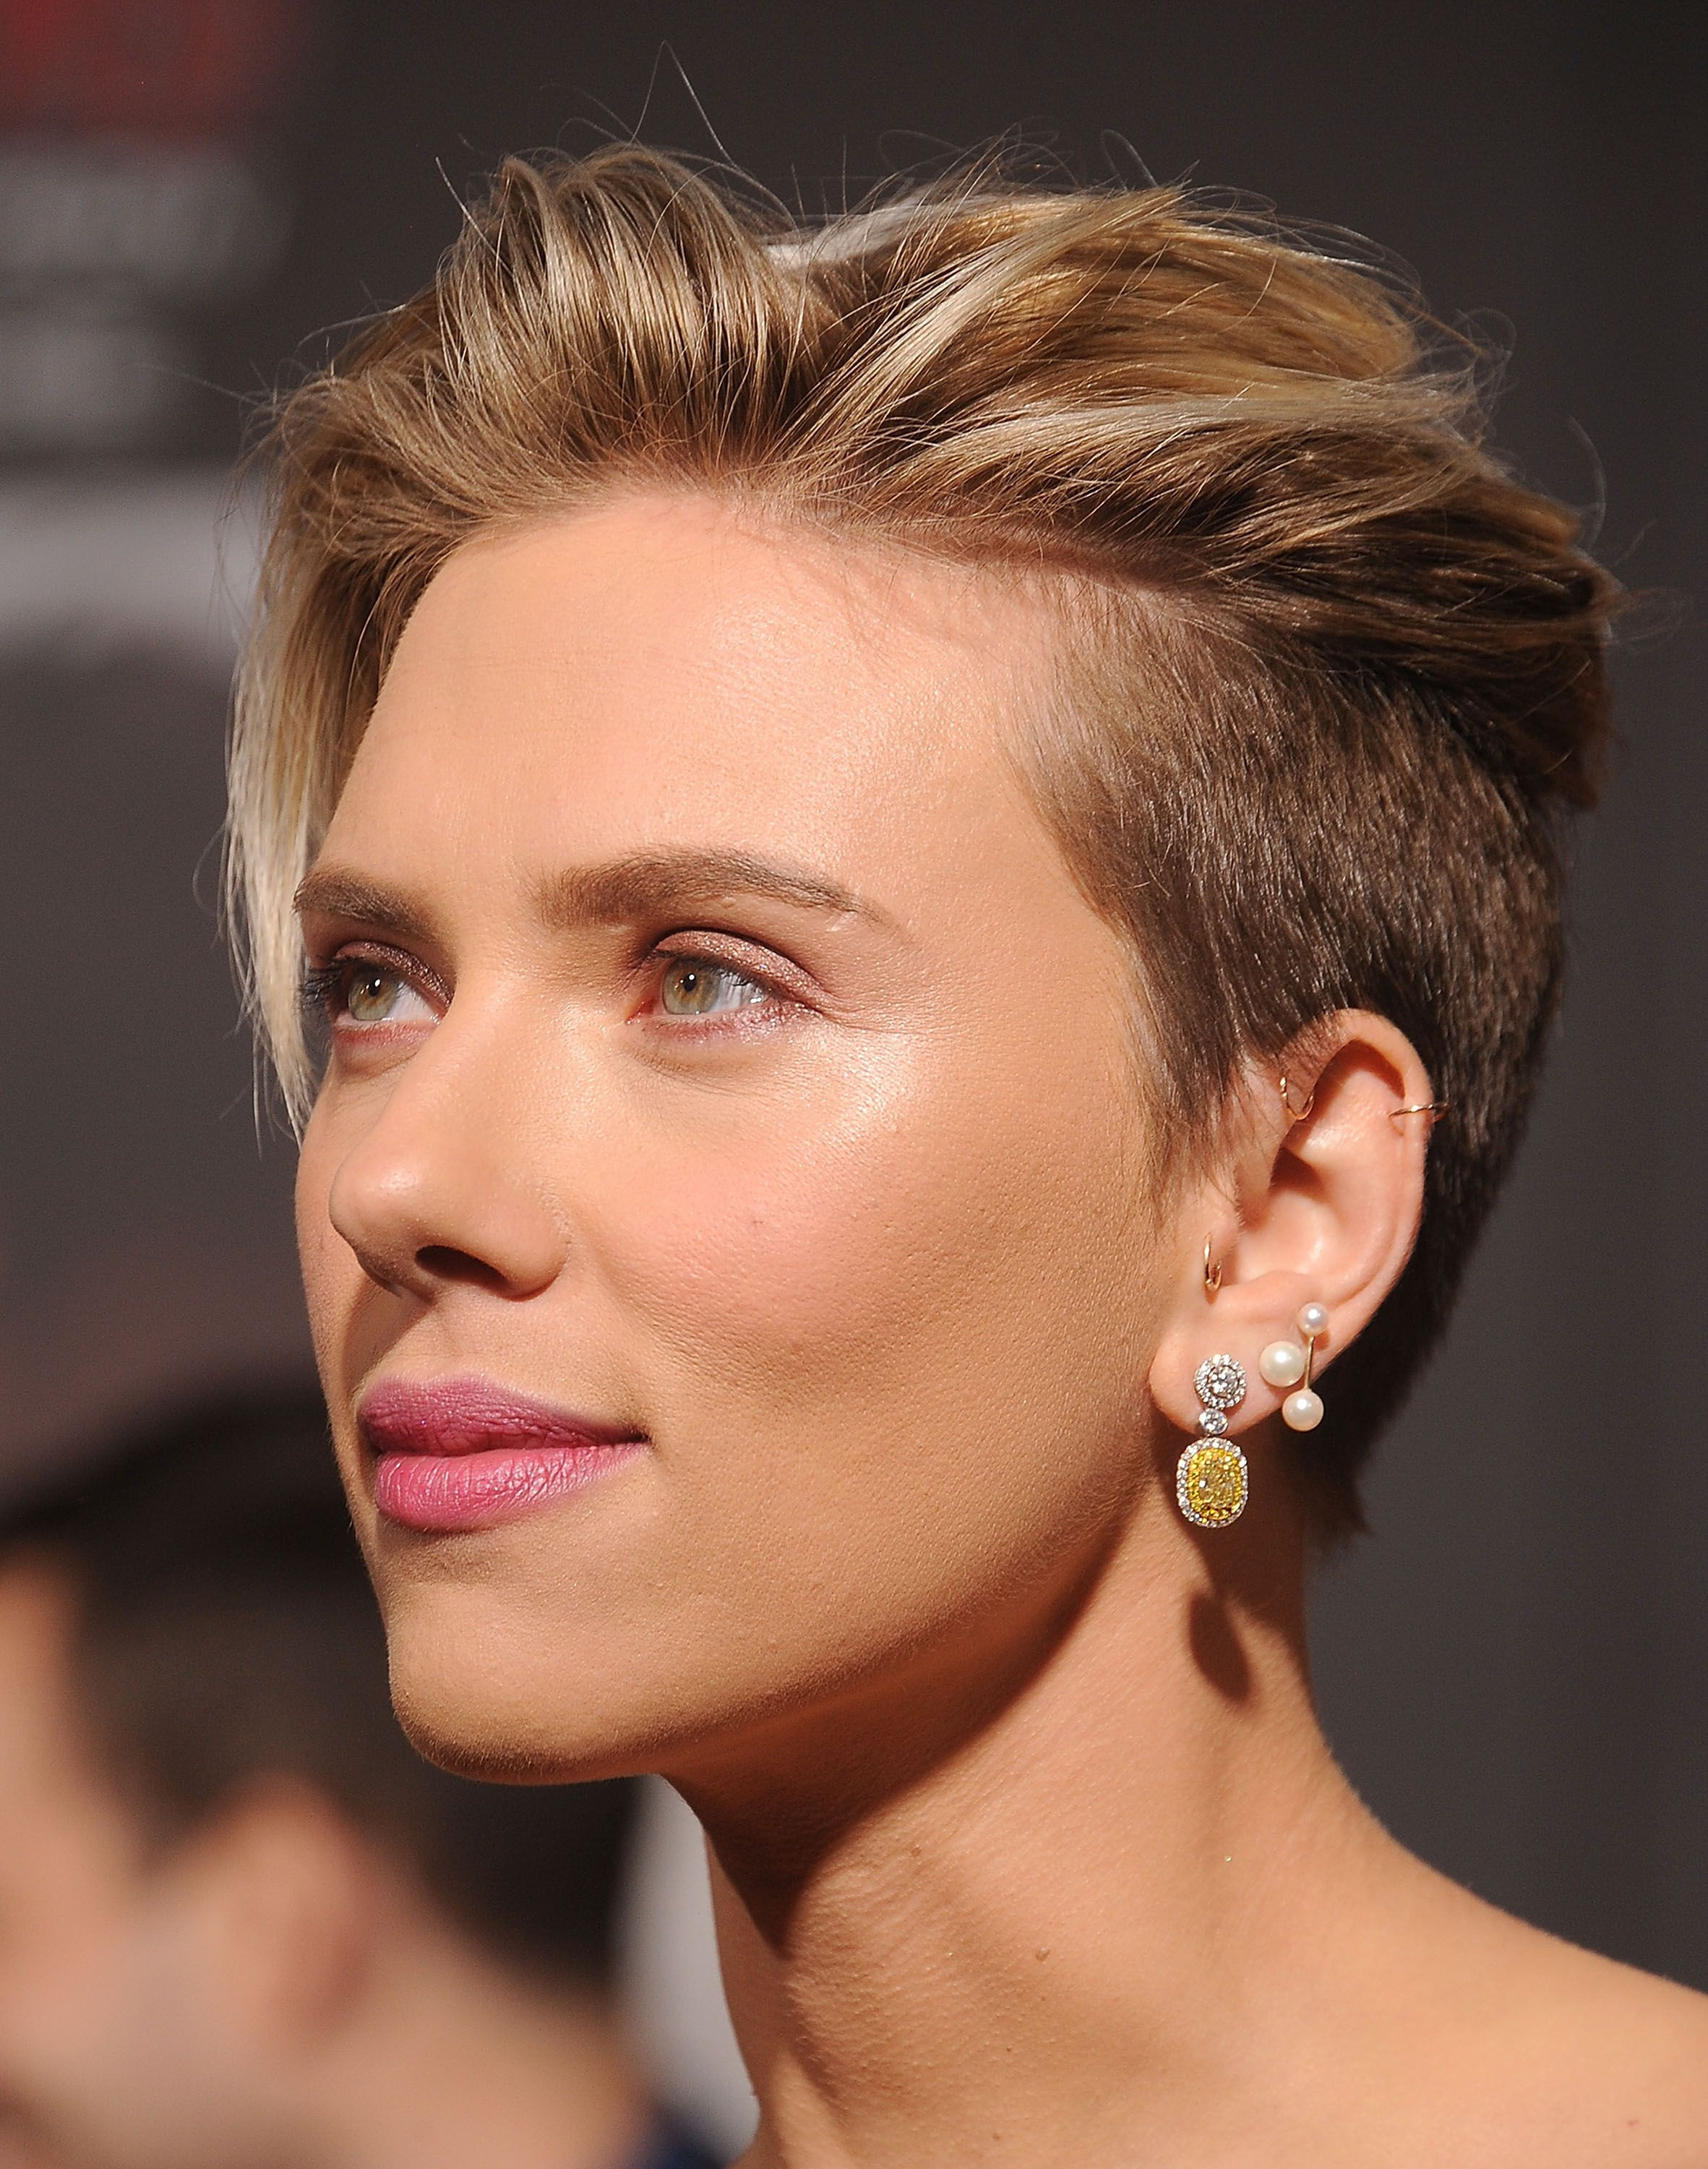 Best ideas about Short Celeb Haircuts . Save or Pin 25 Famous Women Whose Hair Should Really Get More Now.